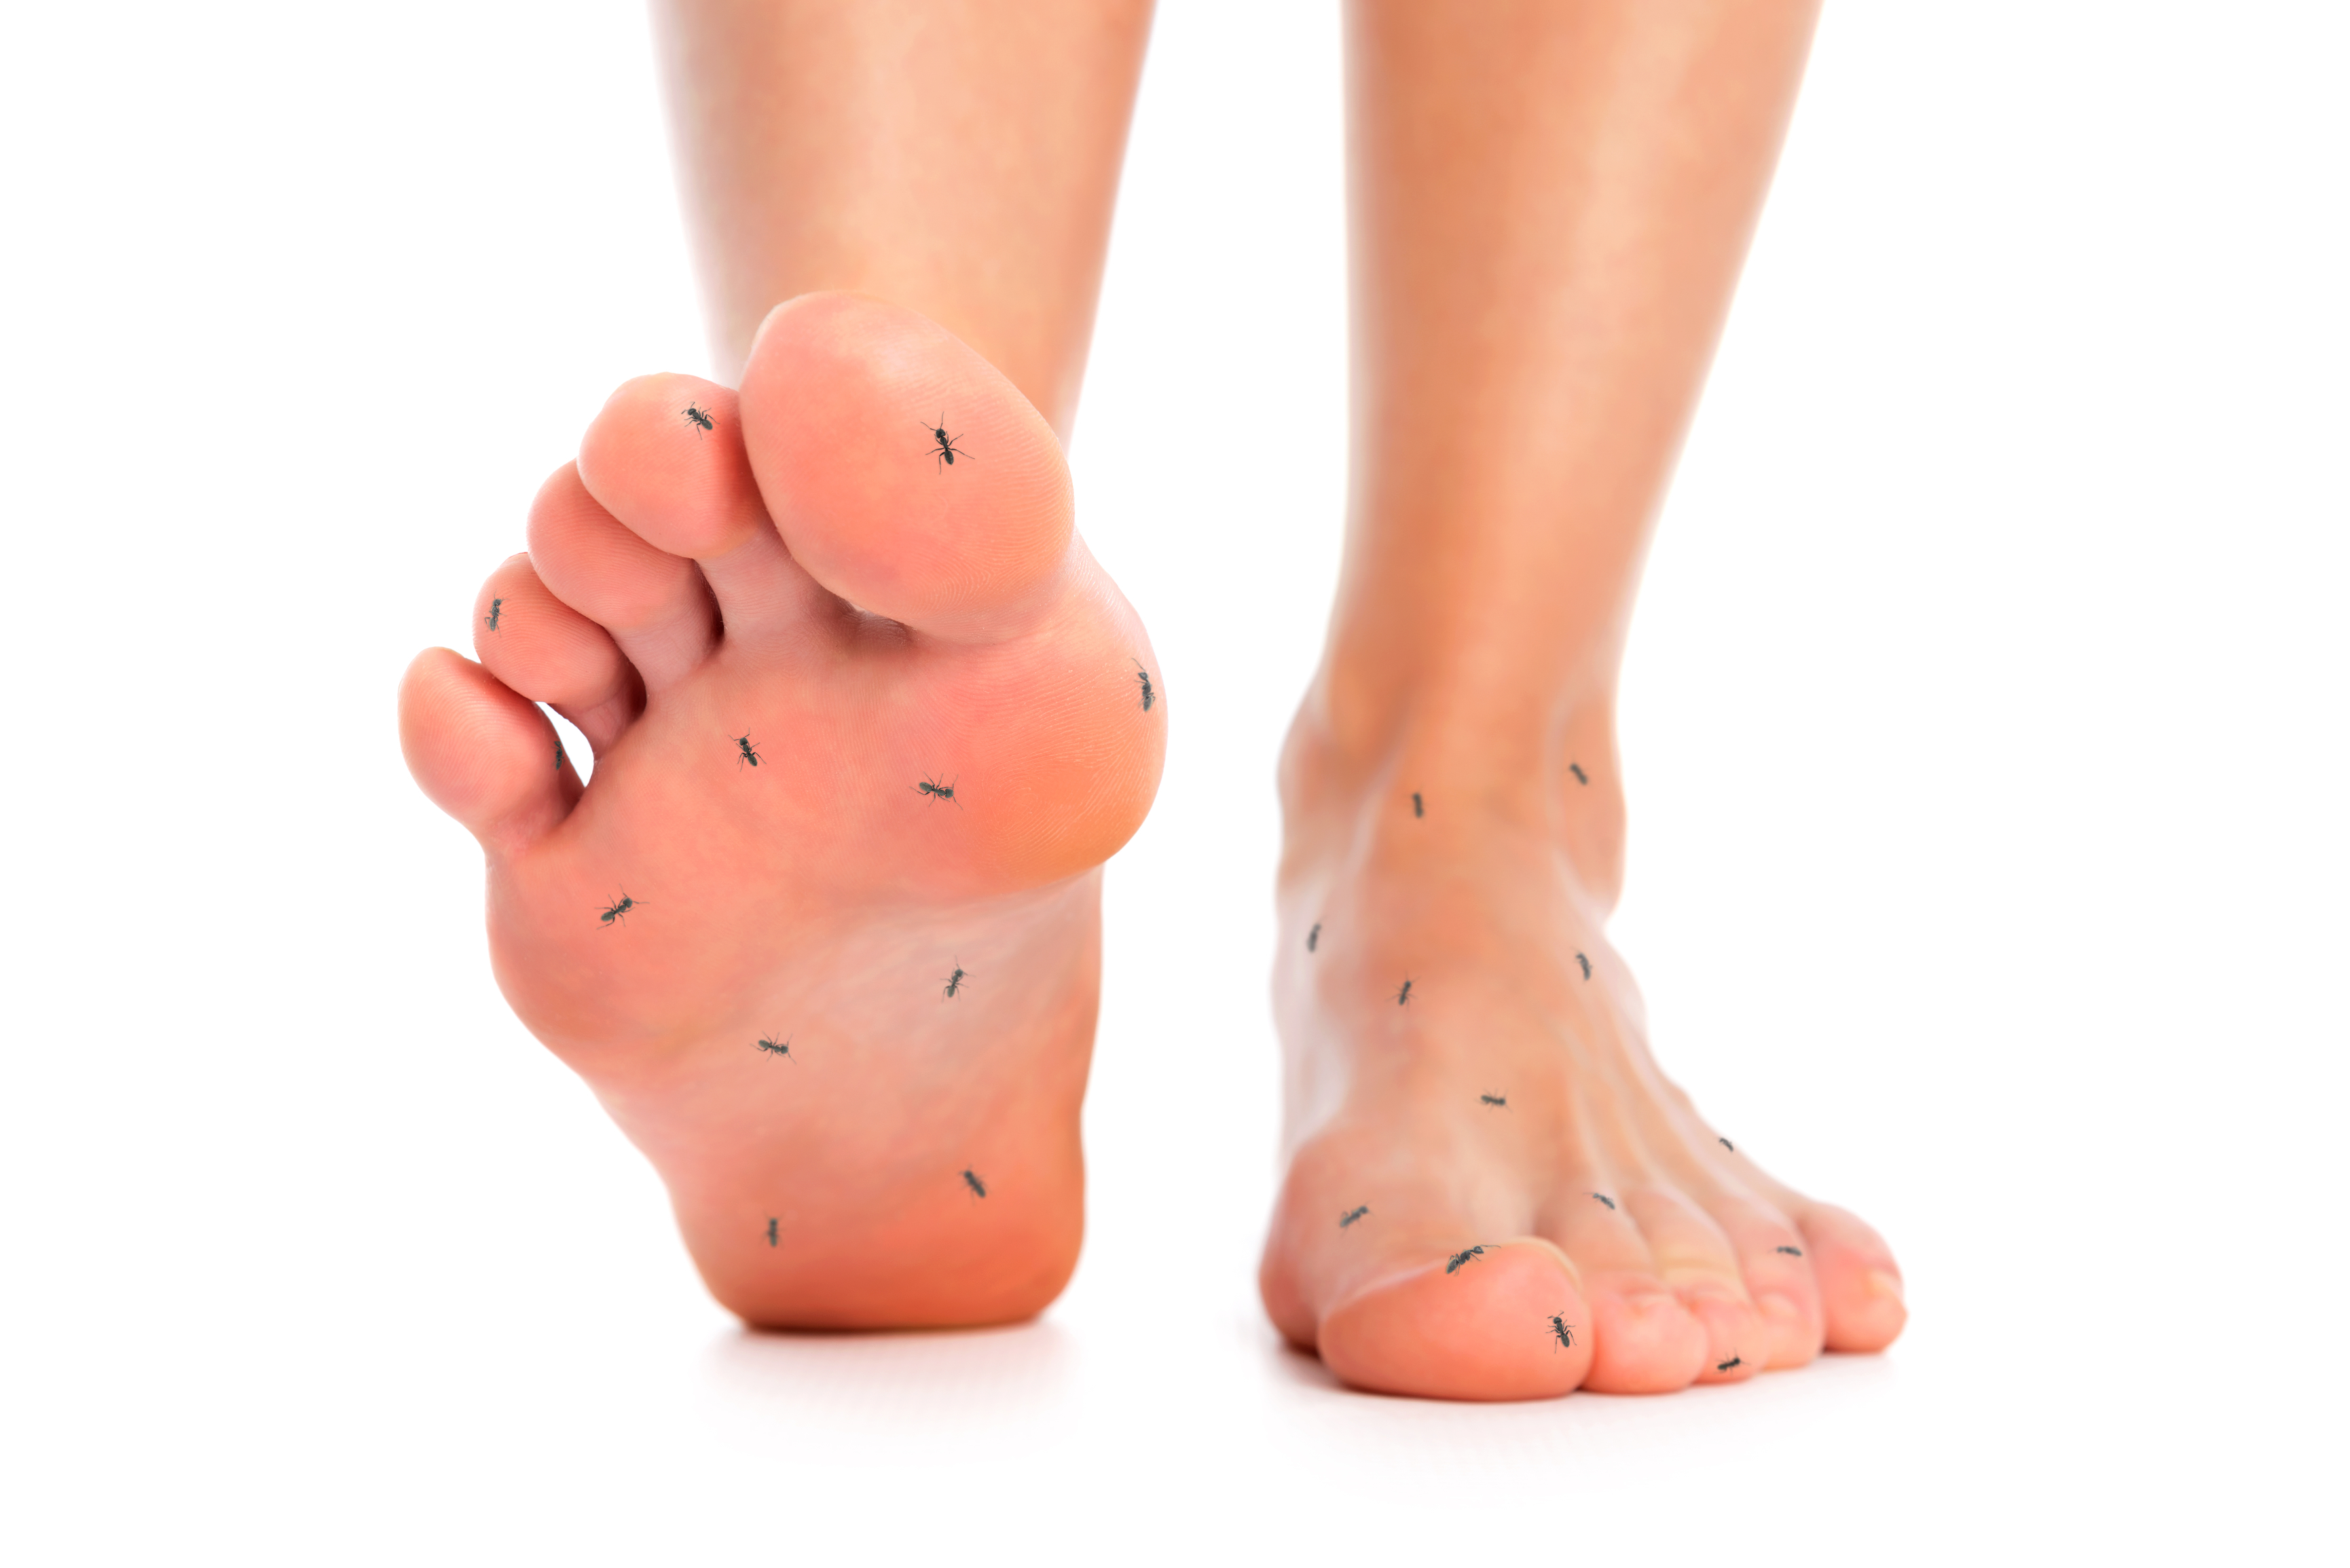 http://www.dreamstime.com/royalty-free-stock-images-numb-limbs-feet-ants-symbolizing-numbness-over-isolated-background-image60370109